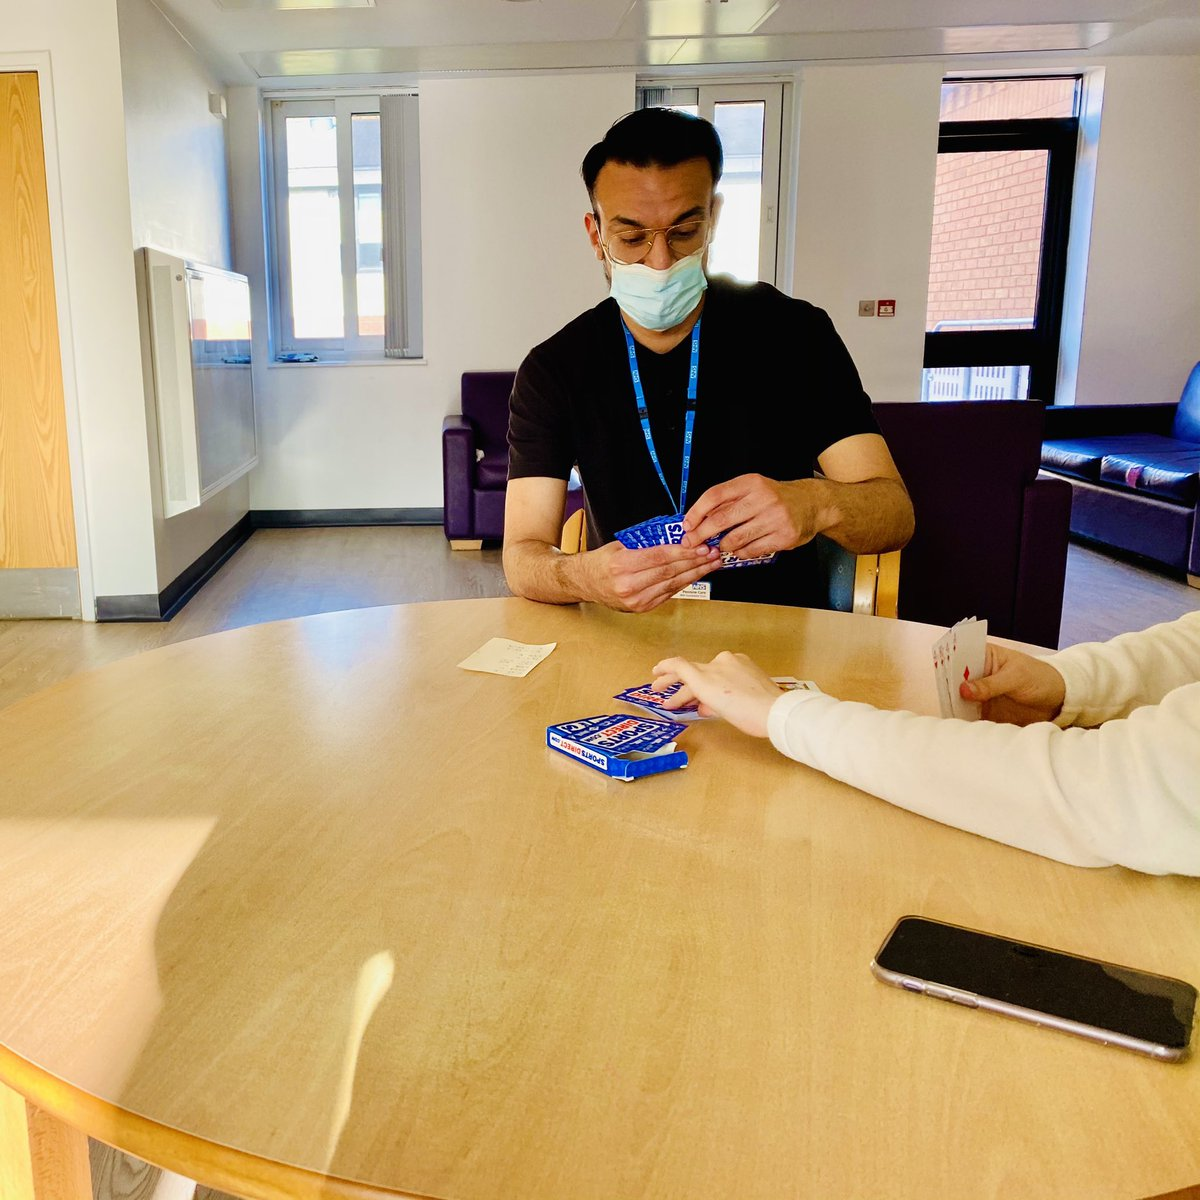 Great to see staff engaging with patients in a way that works for them... 🃏♣️♦️Our new starter Umair who is completing his preceptorship as a newly qualified nurse. Welcome to the team 🥳 @PennineCareNHS @1RMNABBY @CherniceFx #JEU #FridayThoughts #FridayMotivation https://t.co/3LKJsWcNX5